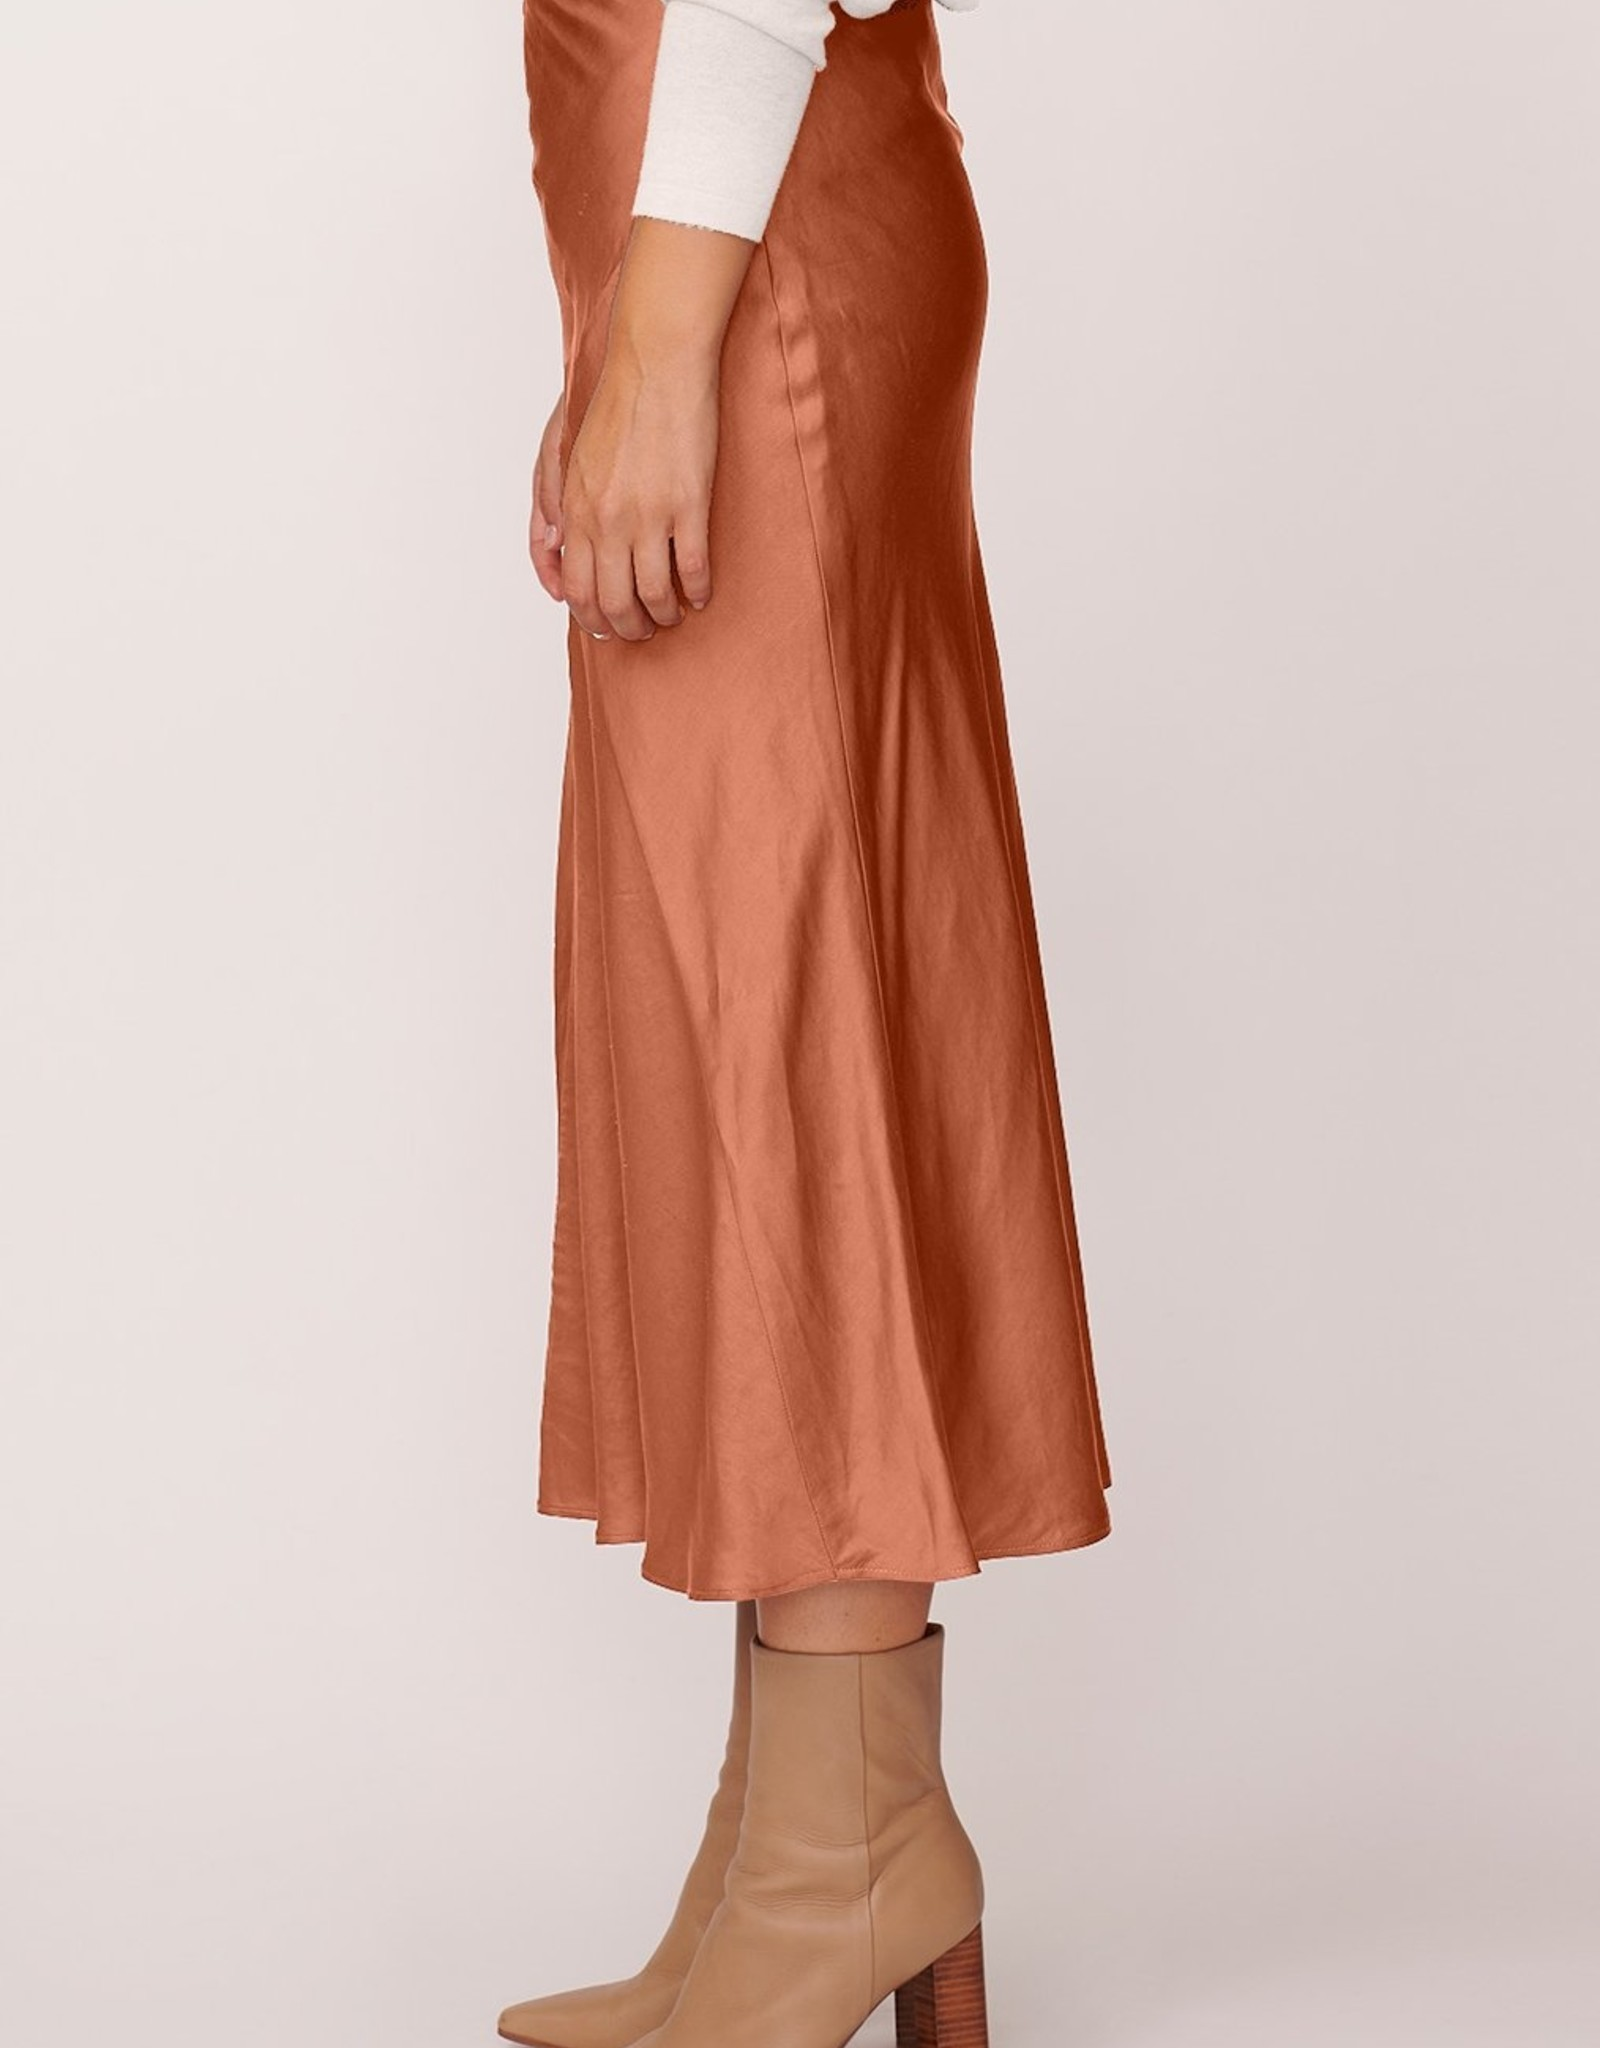 POL HIGHLANDS SKIRT PINK